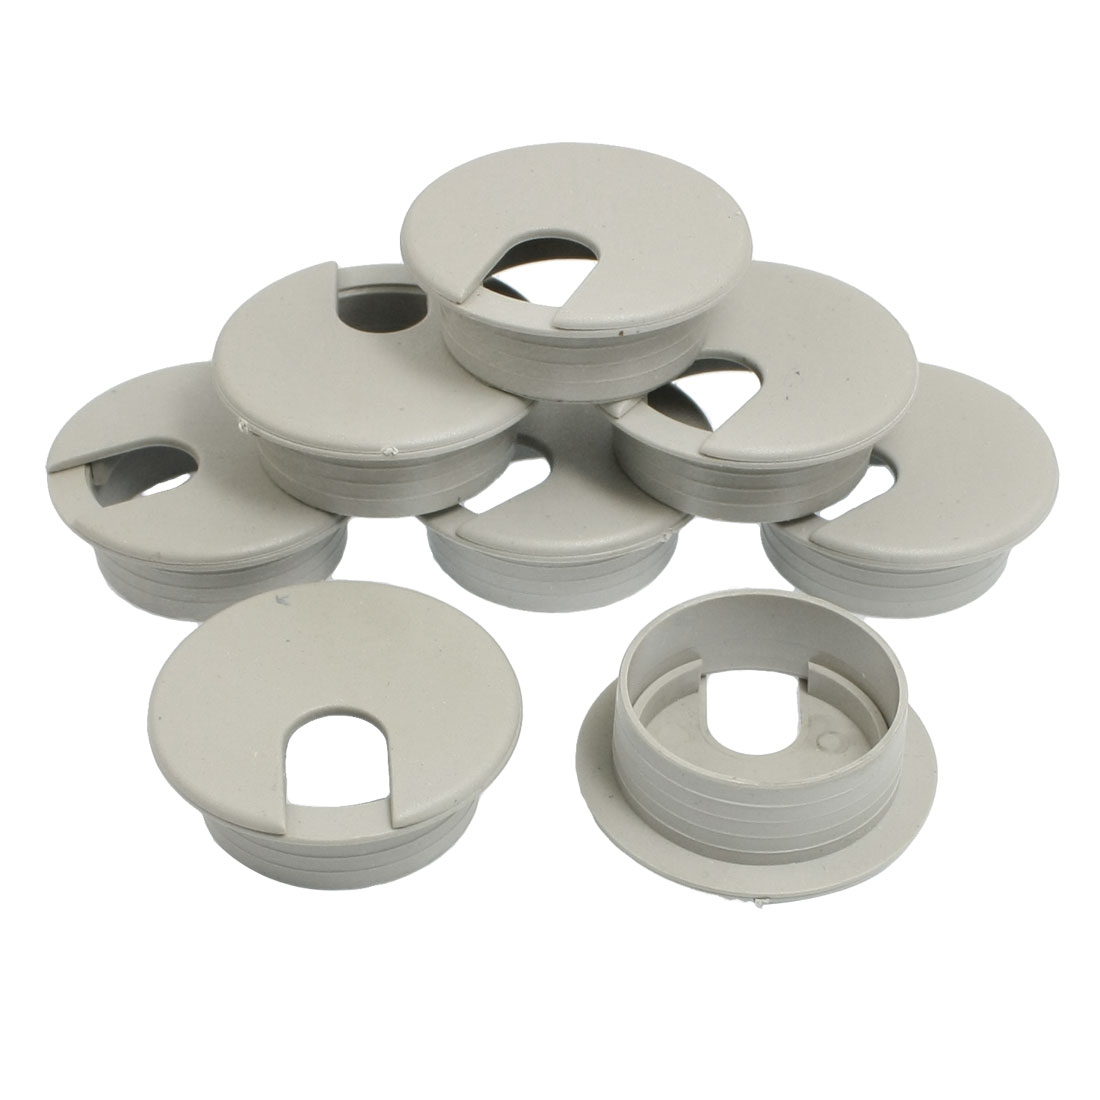 8 Pcs Office Computer Desk Cable Hole Covers Plastic Grommets 35mm Dia.Gray